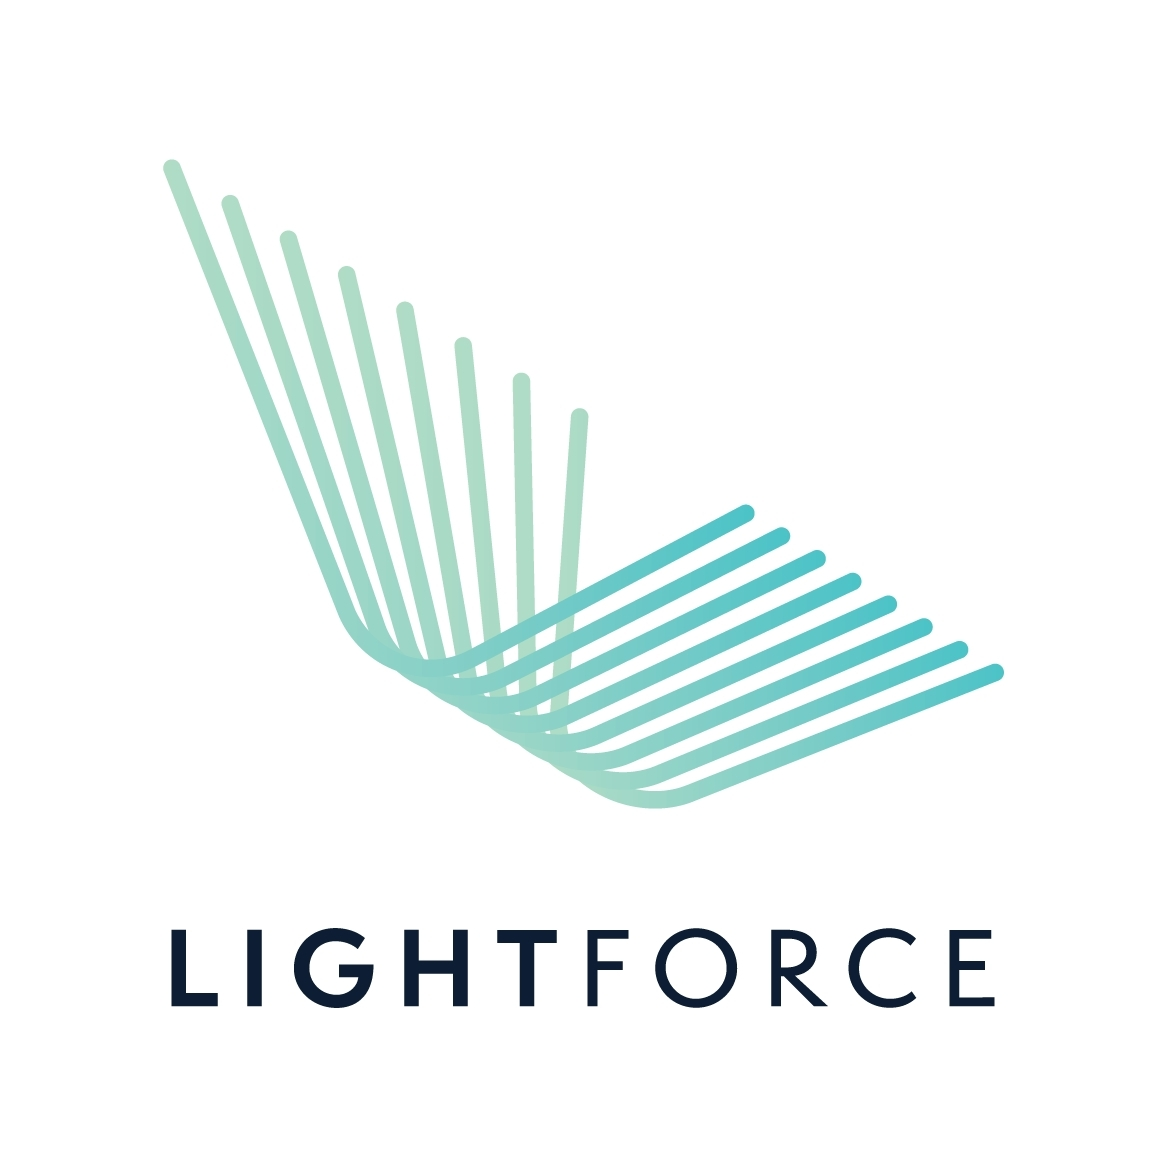 LightForce Orthodontics Closes $14 Million Series B Round Led by Tyche  Partners to Bring Customizable 3D-Printed Brackets to Orthodontic Practices  and Patients | Business Wire